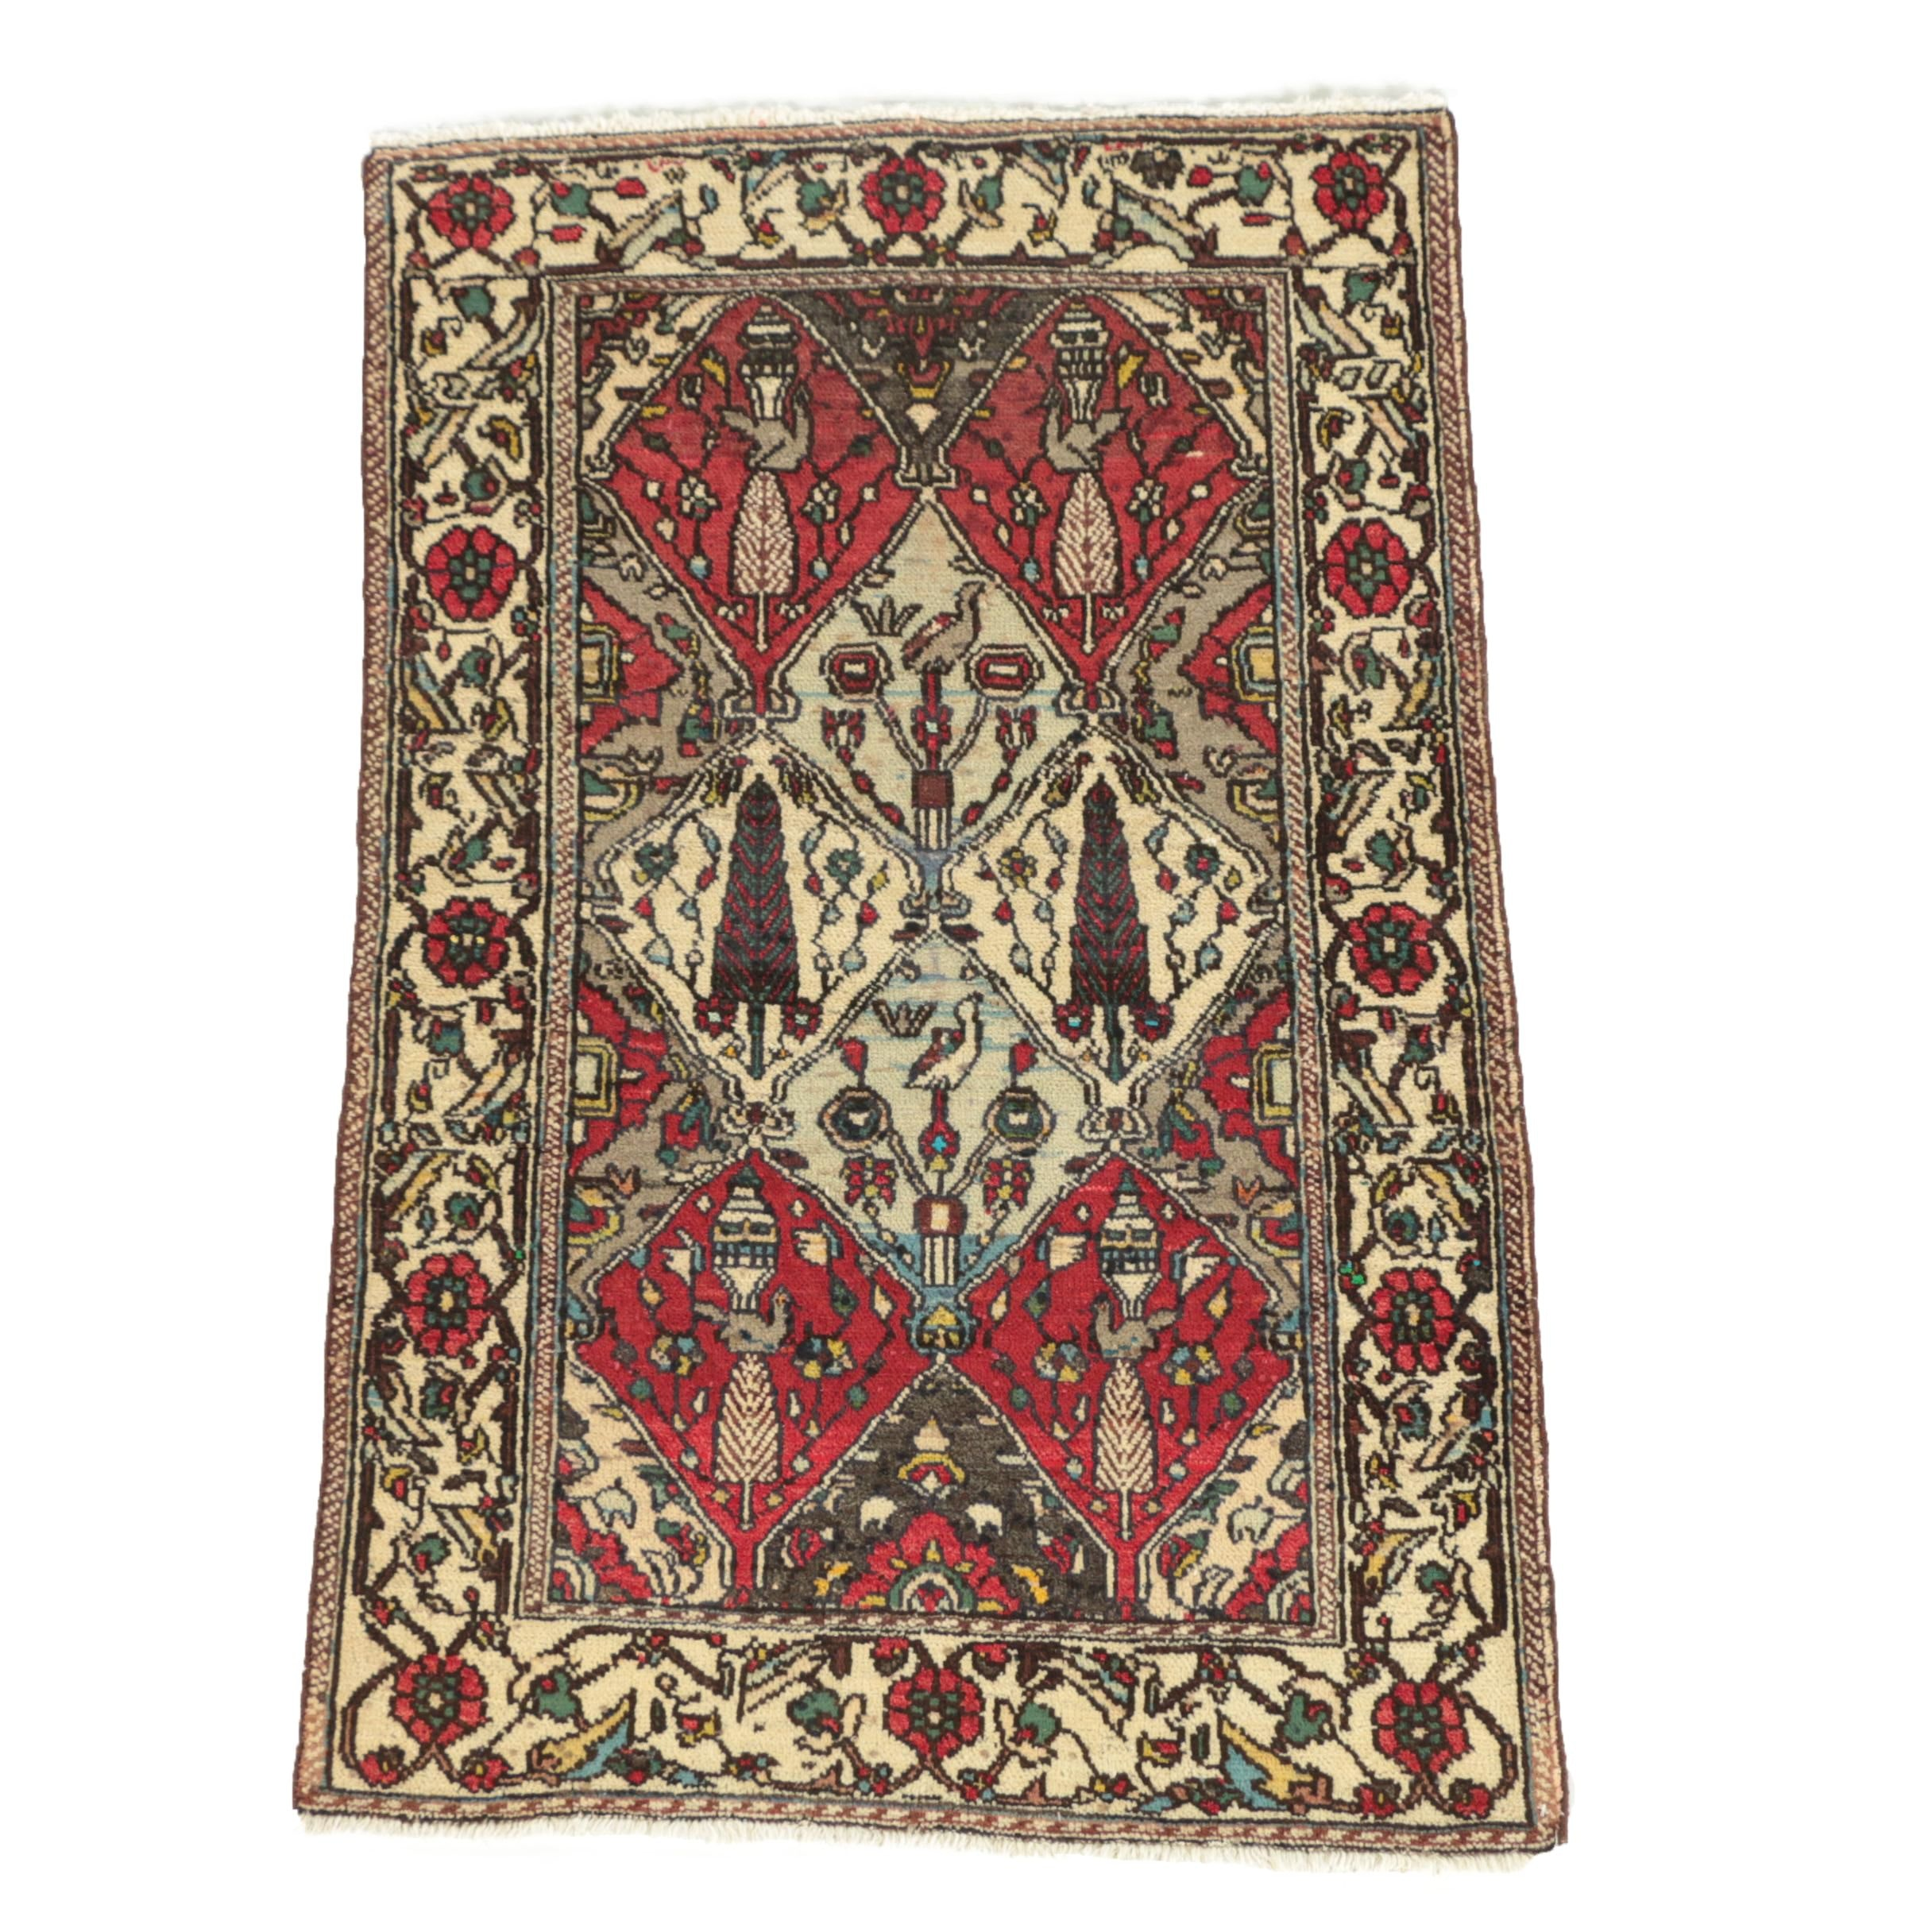 Hand-Knotted Persian Bakhtiari Wool Area Rug